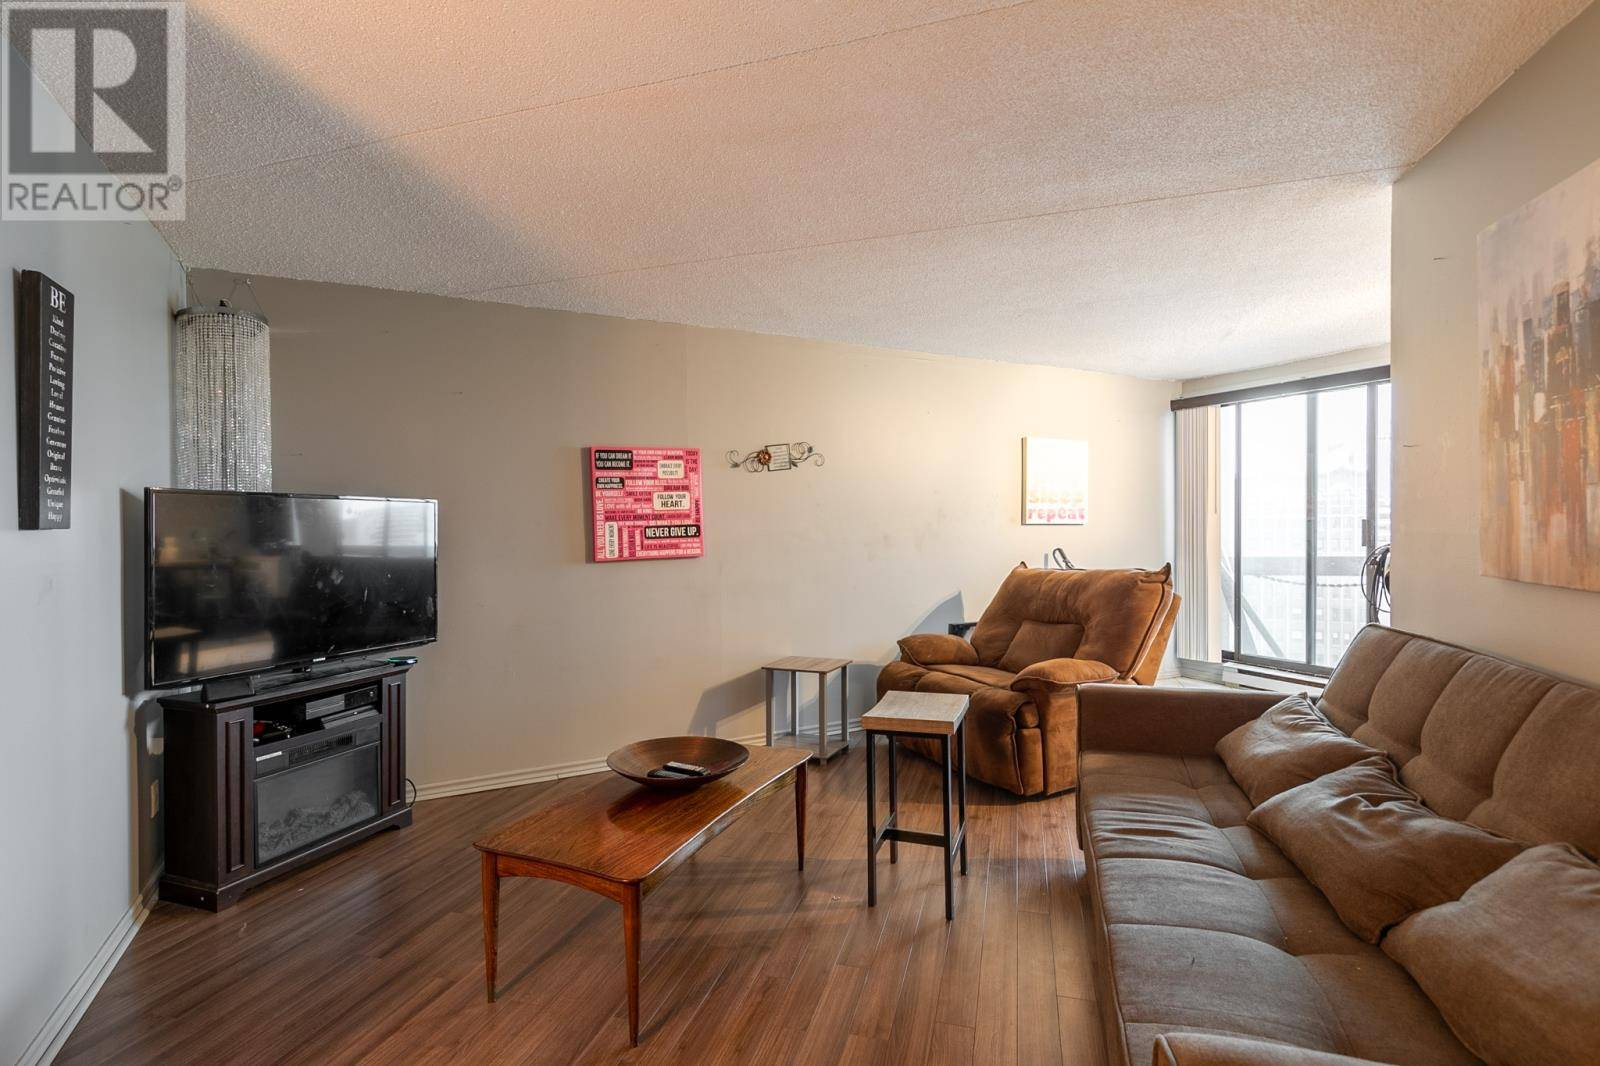 Condo for sale at 150 Park St Unit 1105 Windsor Ontario - MLS: 20001237